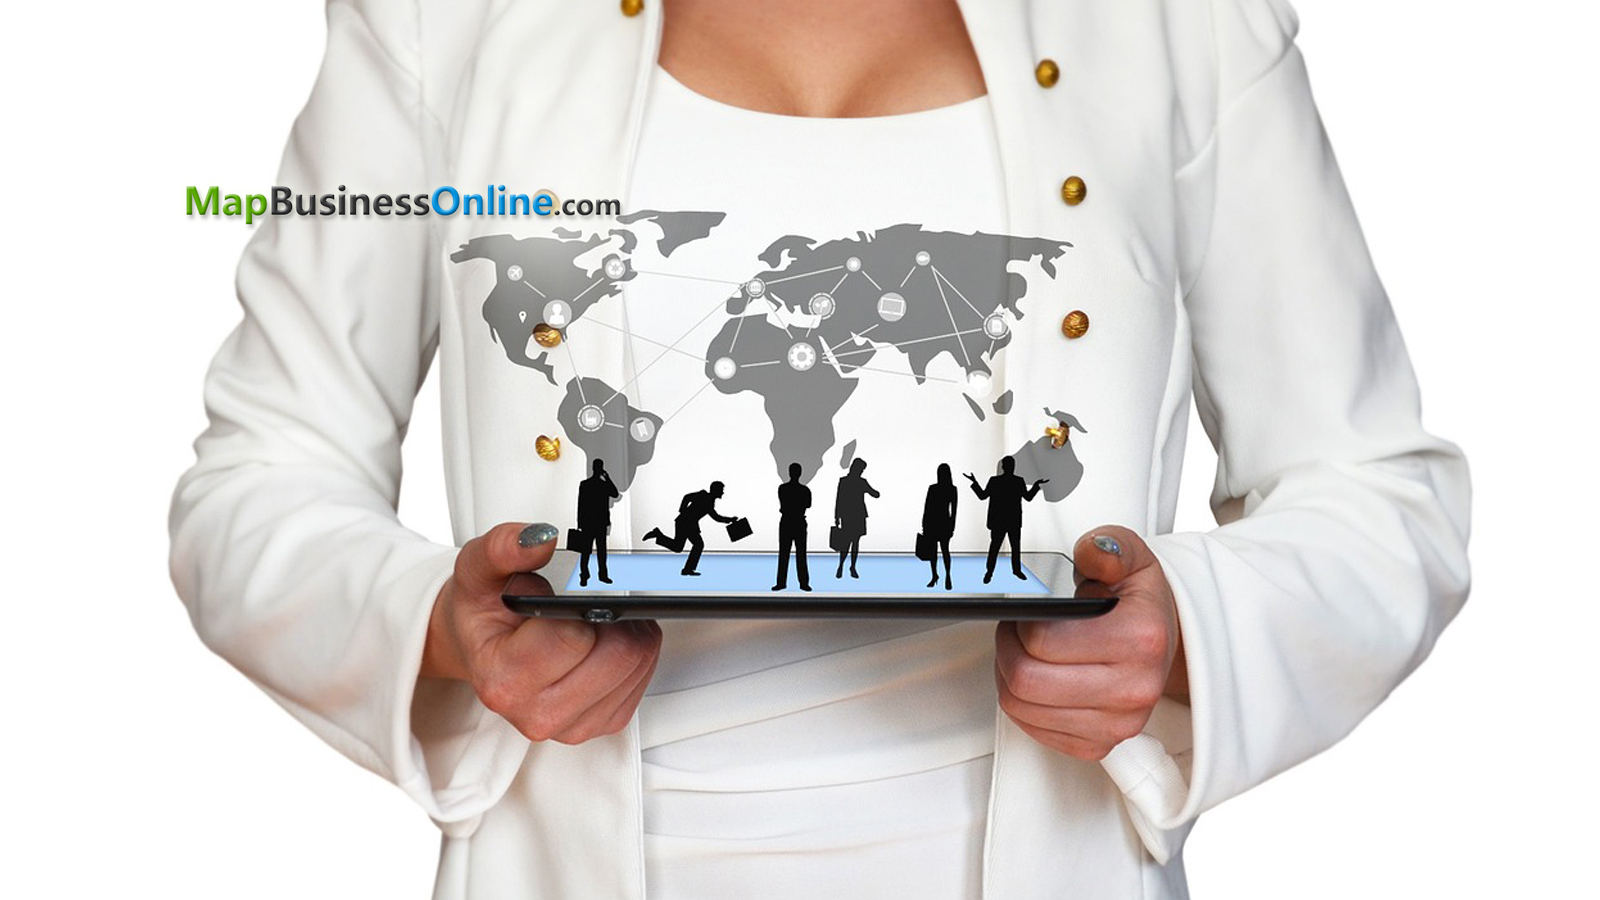 MapBusinessOnline.com Releases Business Listings for ... on map business people, gis maps online, map games online, home business online, restaurant business online, mind map online, map business software,